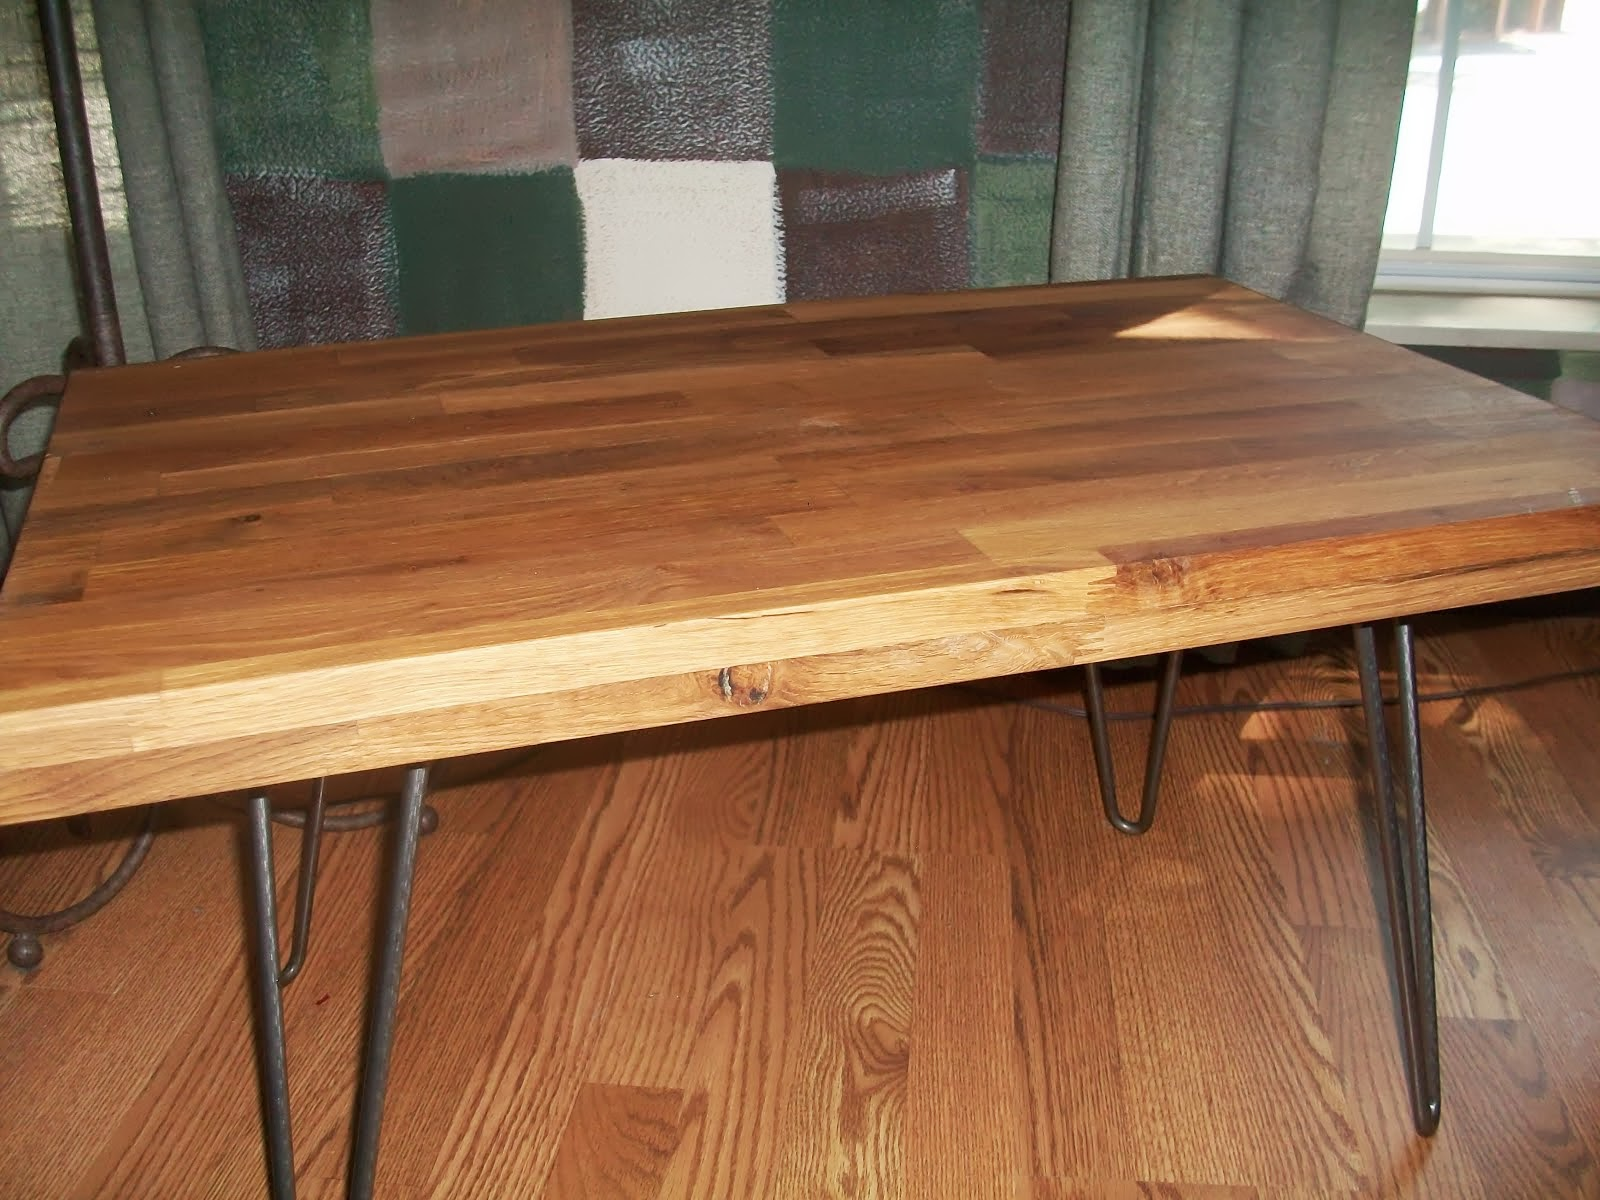 Butcher block coffee table and end table - IKEA Hackers